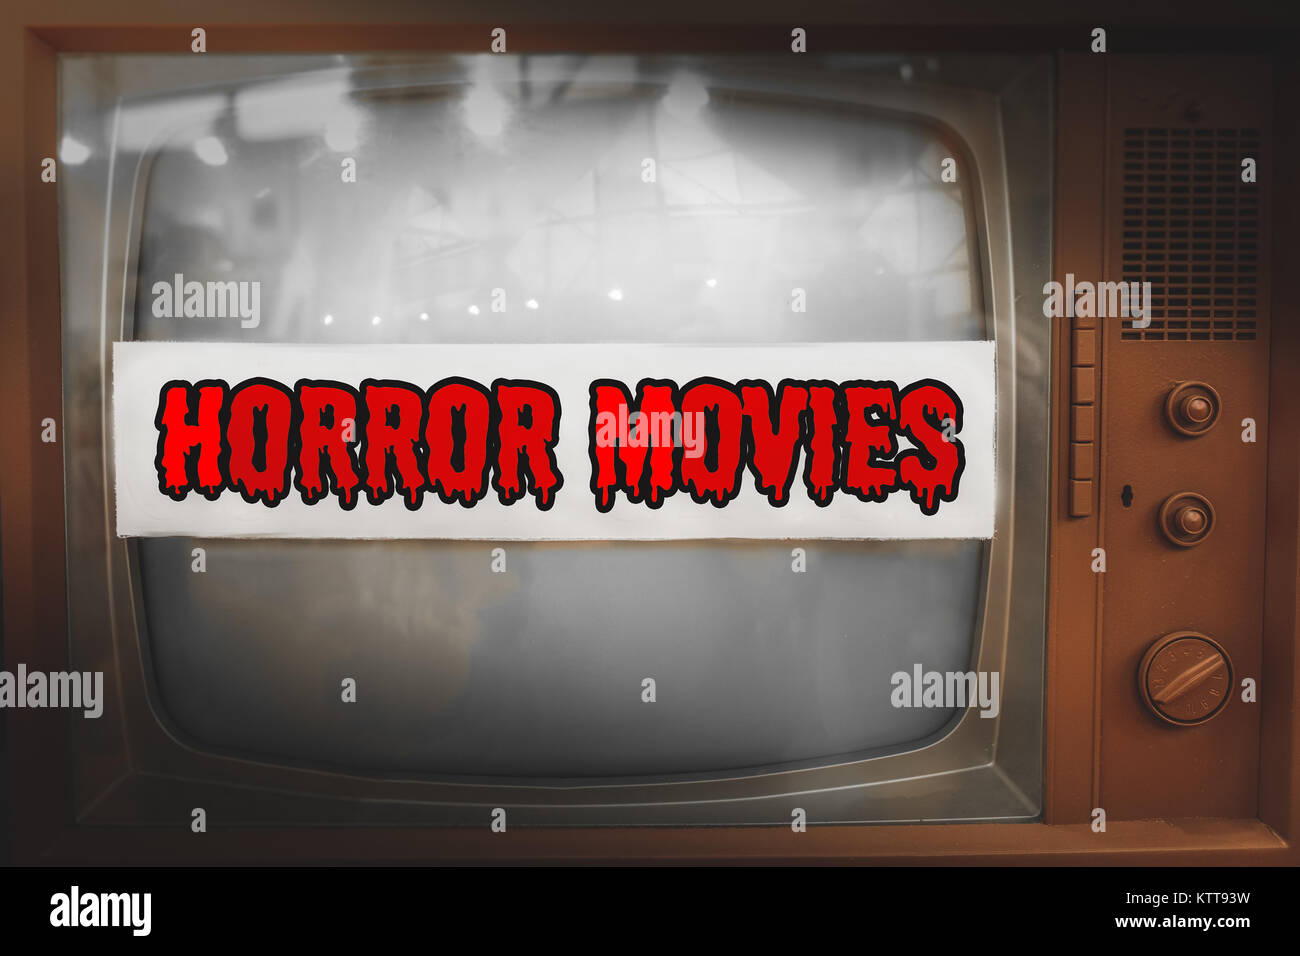 horror movies genre television label old tv text vintage retro - Stock Image